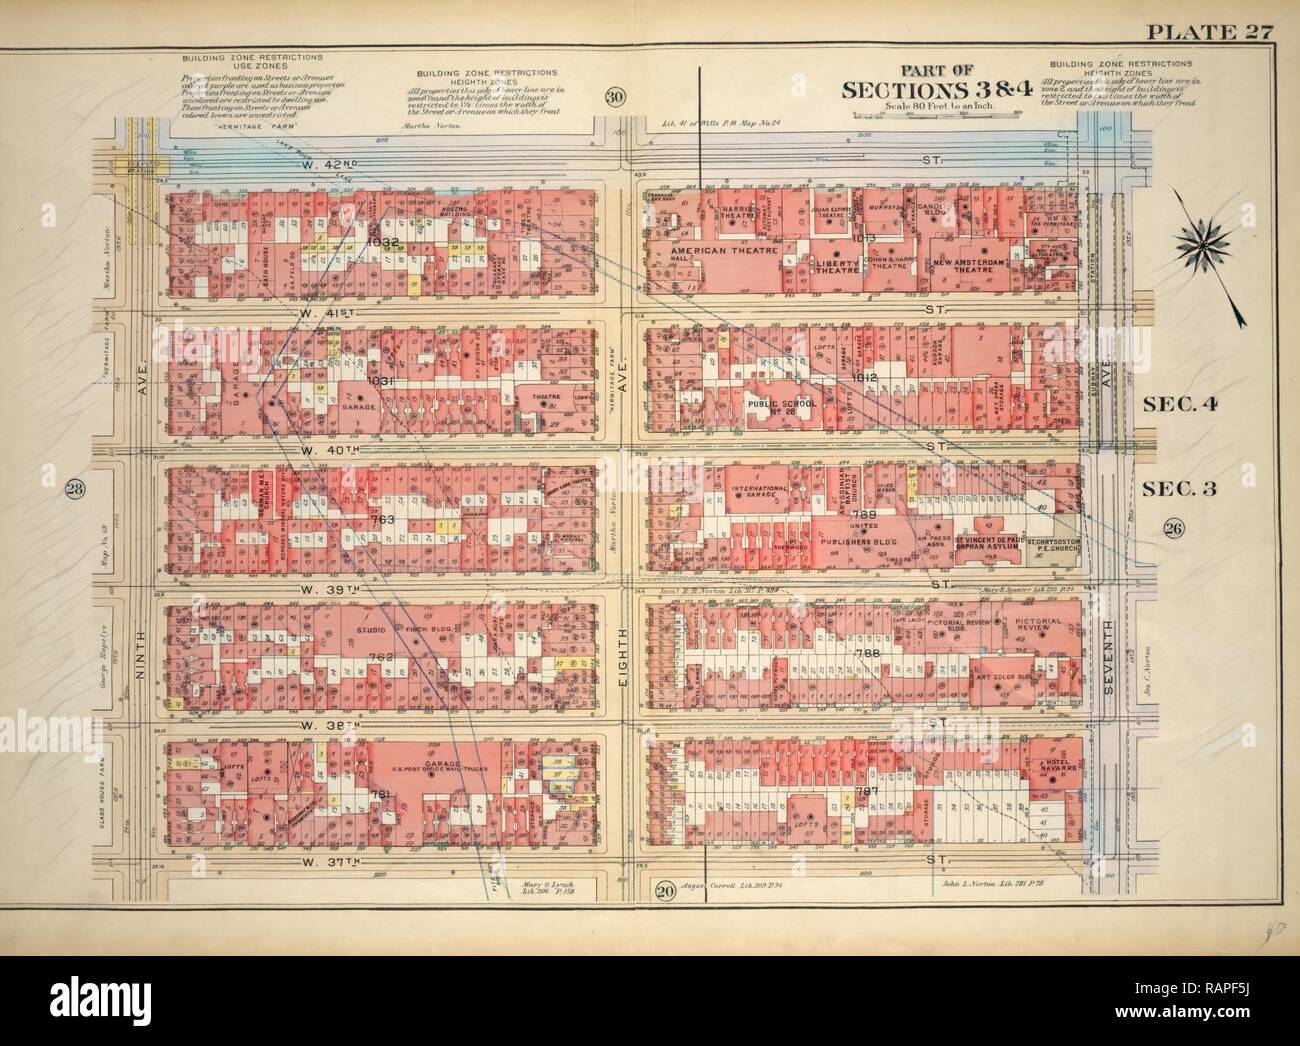 Plate 27, Part of Sections 3&4: Bounded by W. 42nd Street, Seventh Avenue, W. 37th Street and Ninth Avenue, New York reimagined - Stock Image